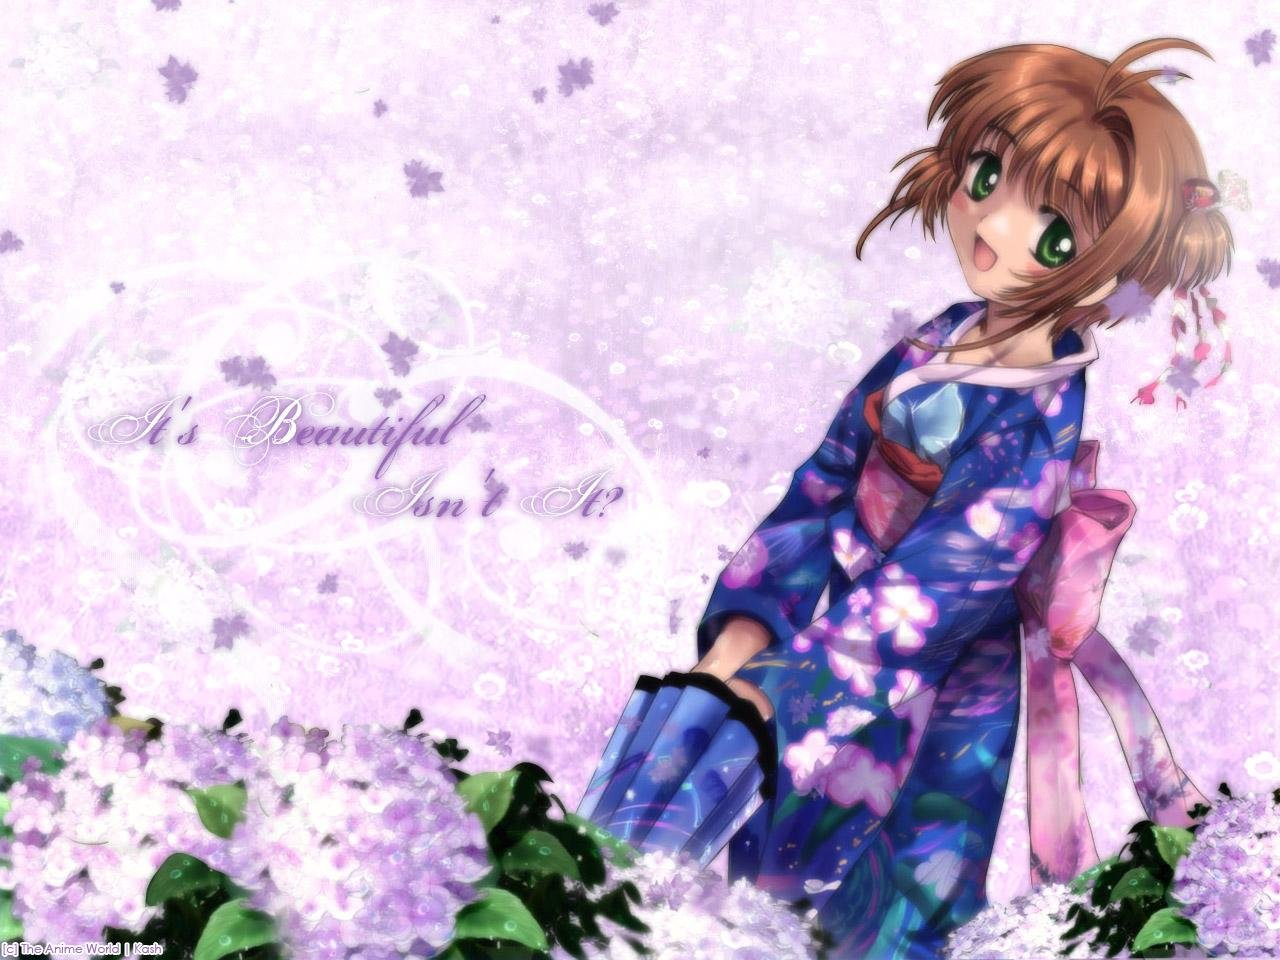 Download hd 1280x960 Cardcaptor Sakura PC background ID:273769 for free